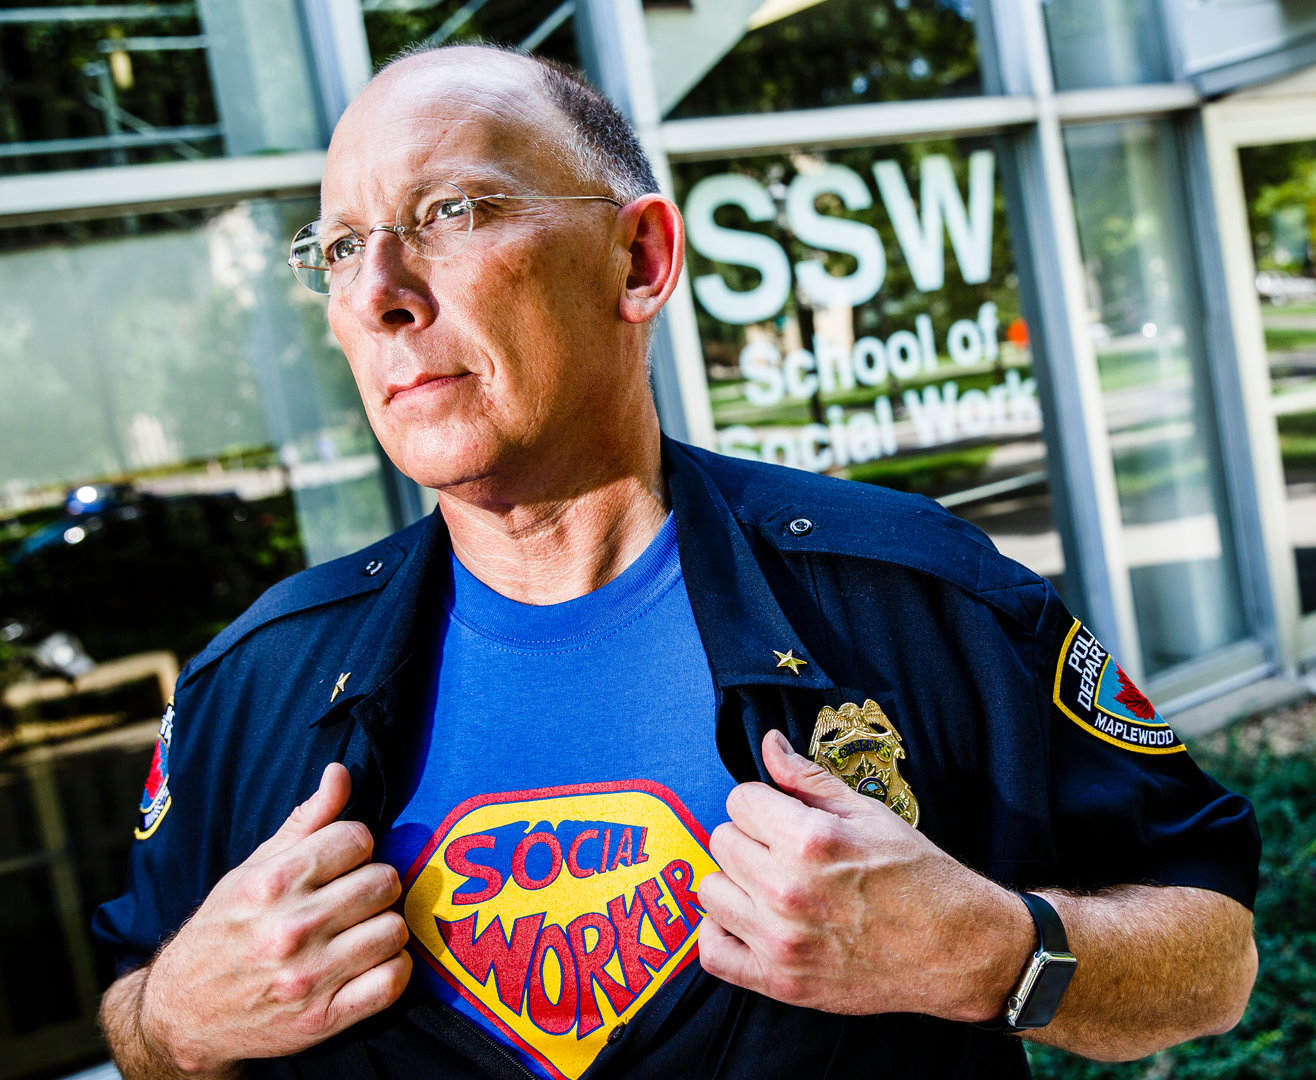 man holding uniform with superman t-shirt underneath